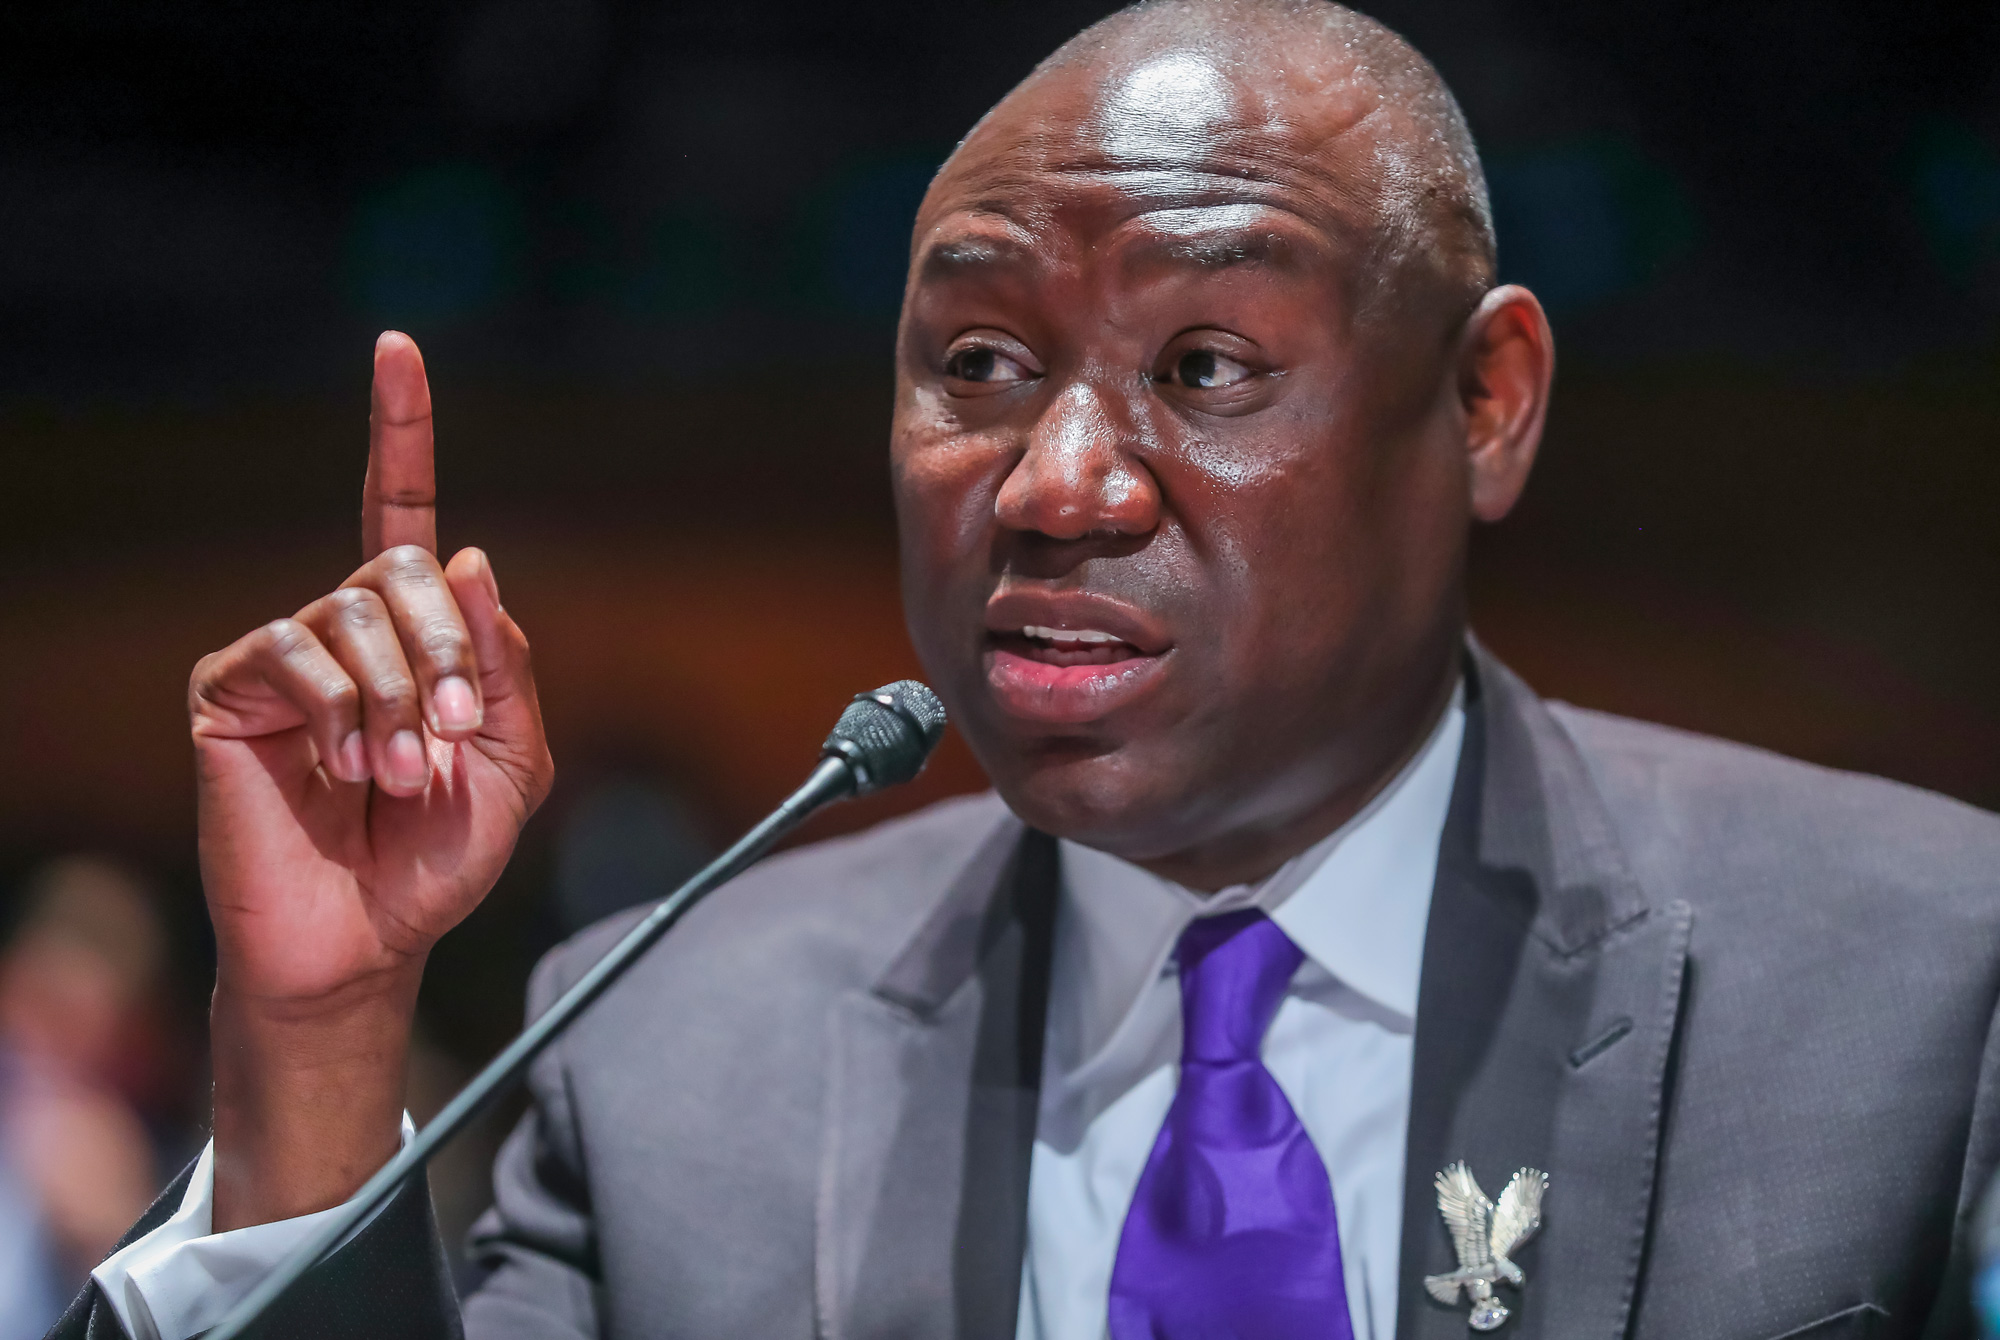 Civil rights attorney Benjamin Crump speaks during the House Judiciary Committee hearing on Policing Practices and Law Enforcement Accountability at the U.S. Capitol on June 10 in Washington.